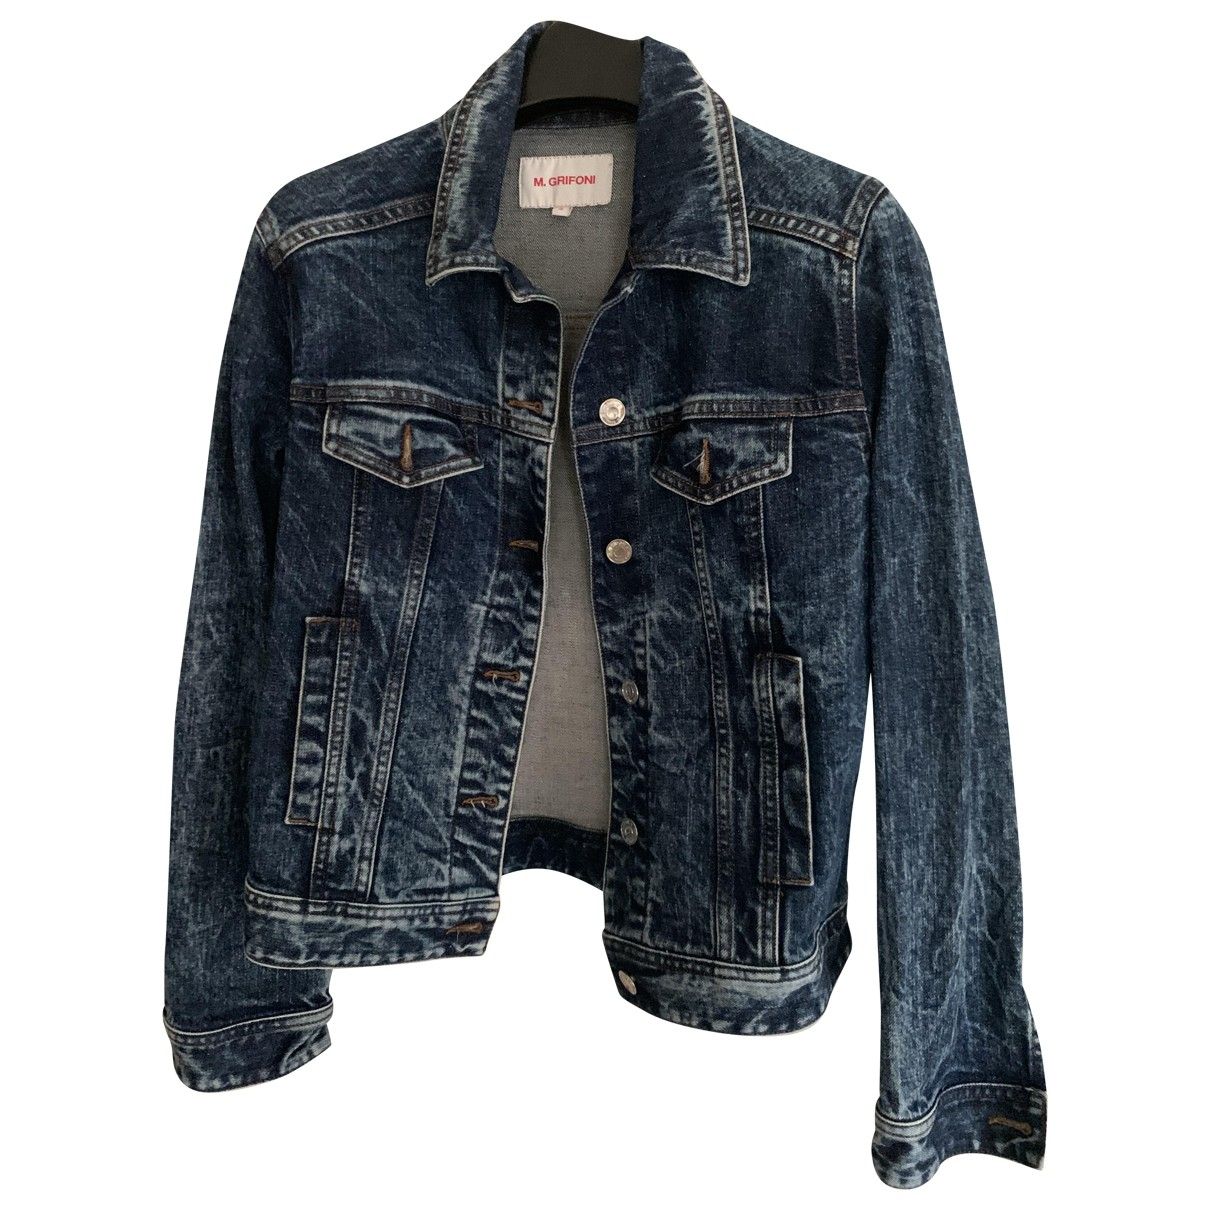 Mauro Grifoni \N Blue Denim - Jeans jacket for Women 40 IT